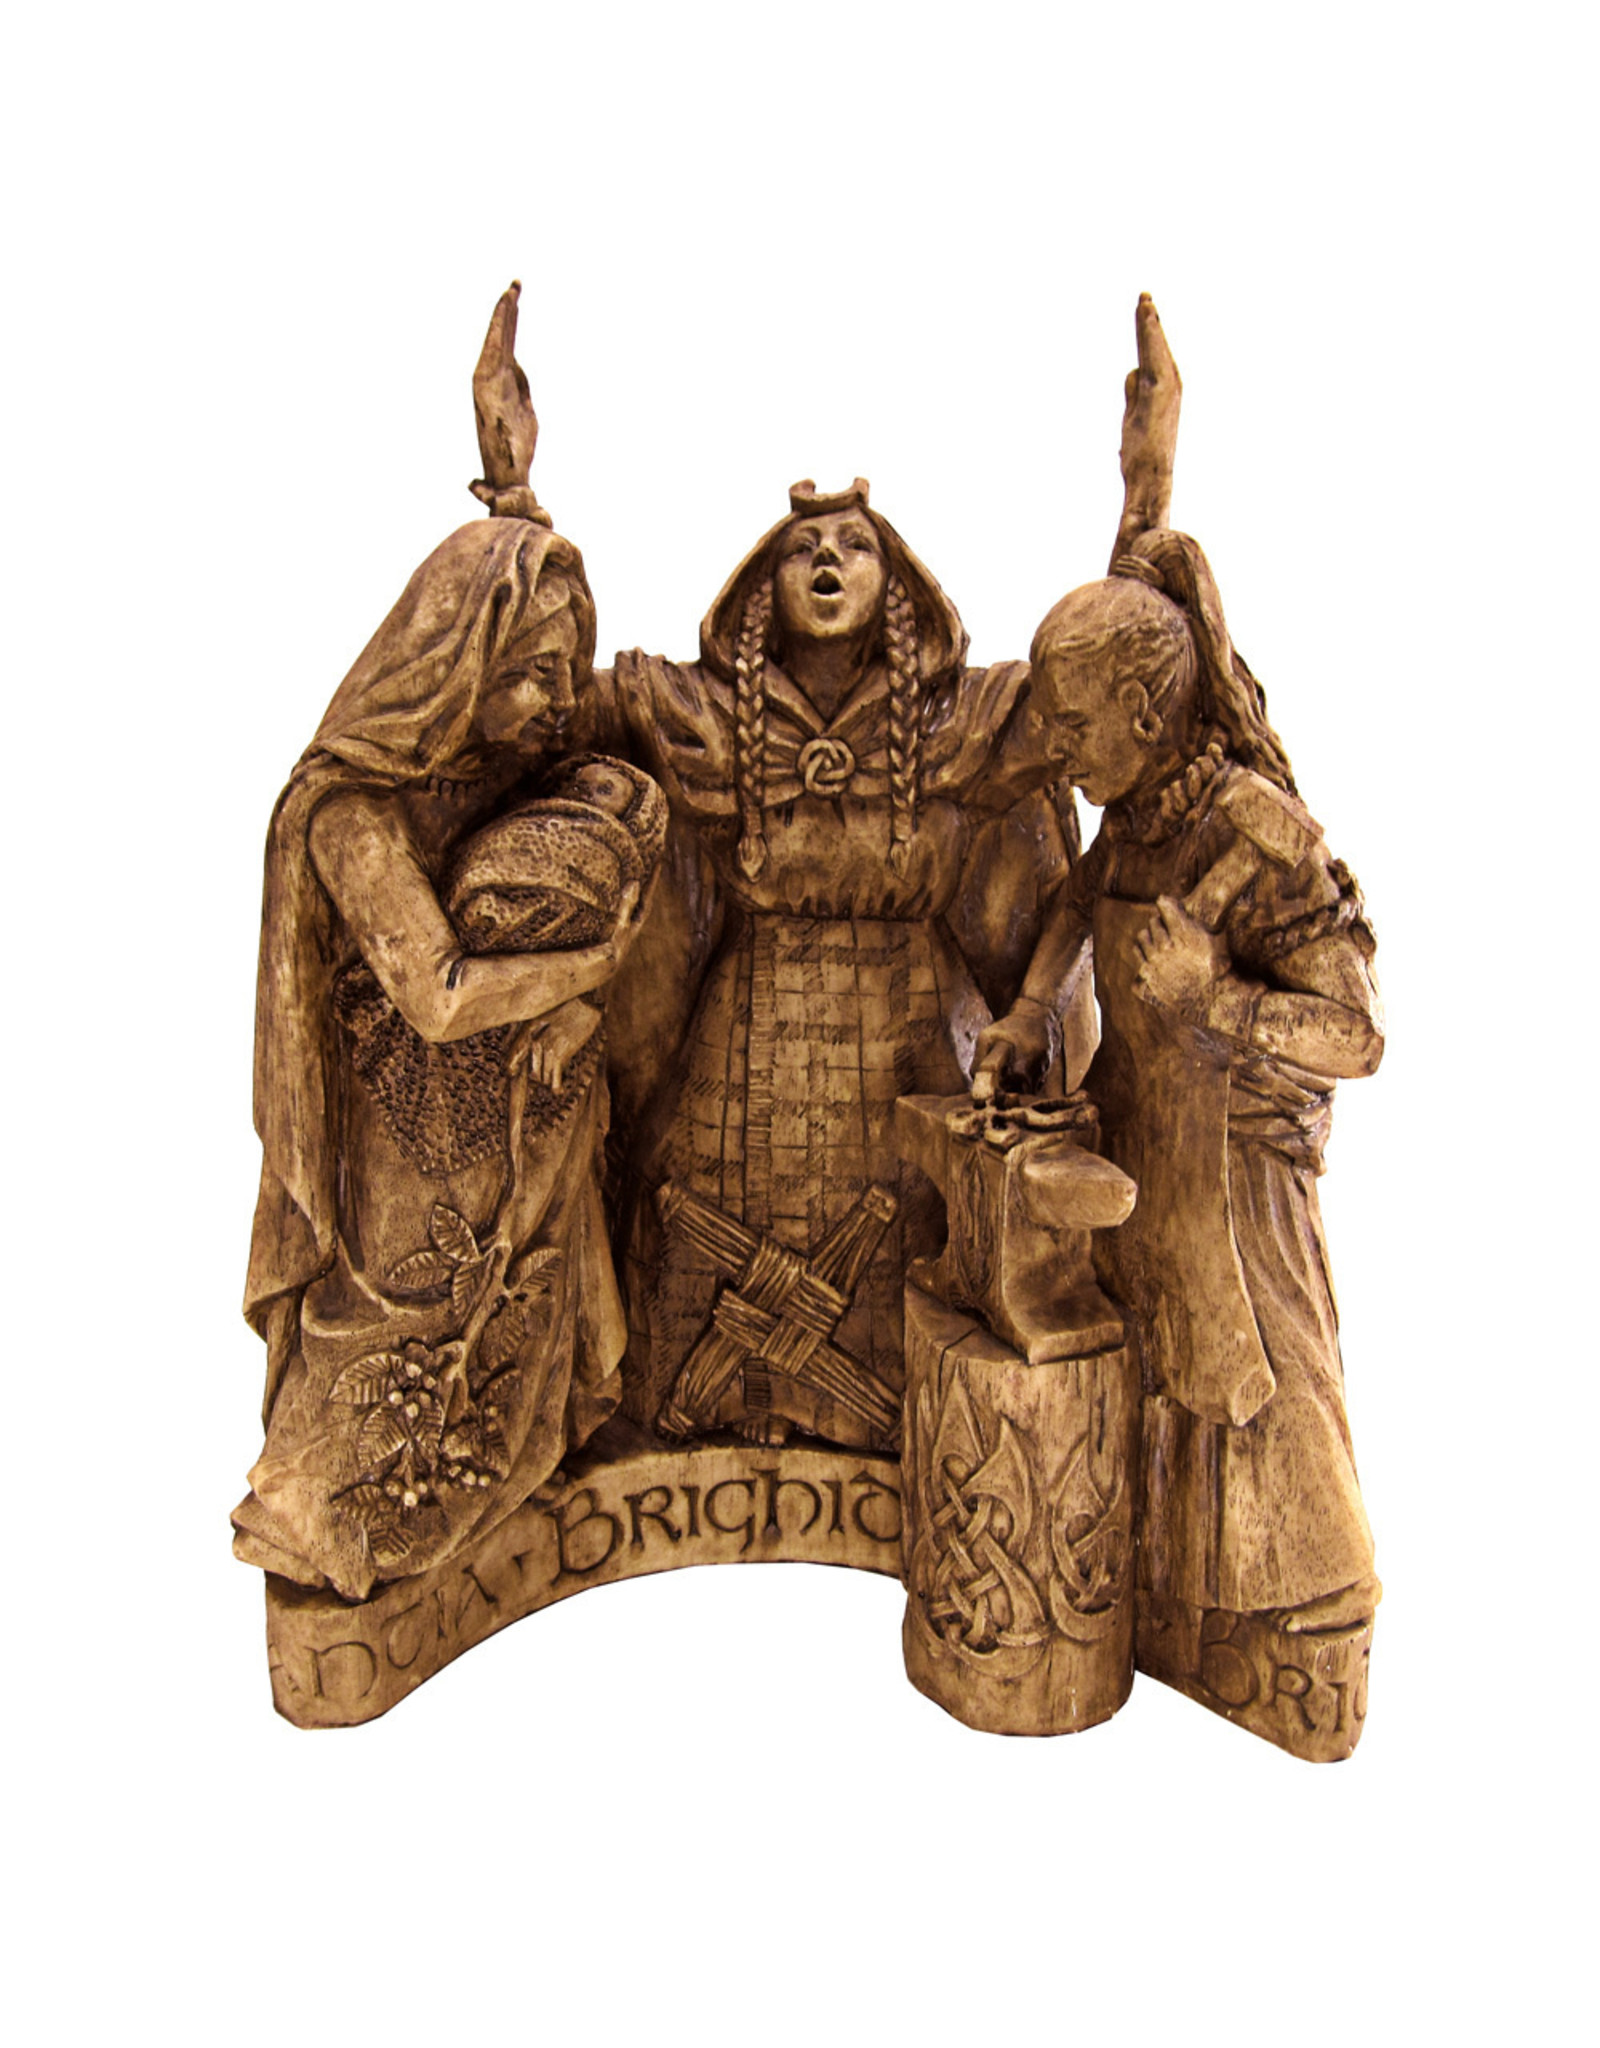 Brigid Statue in Wood Finish